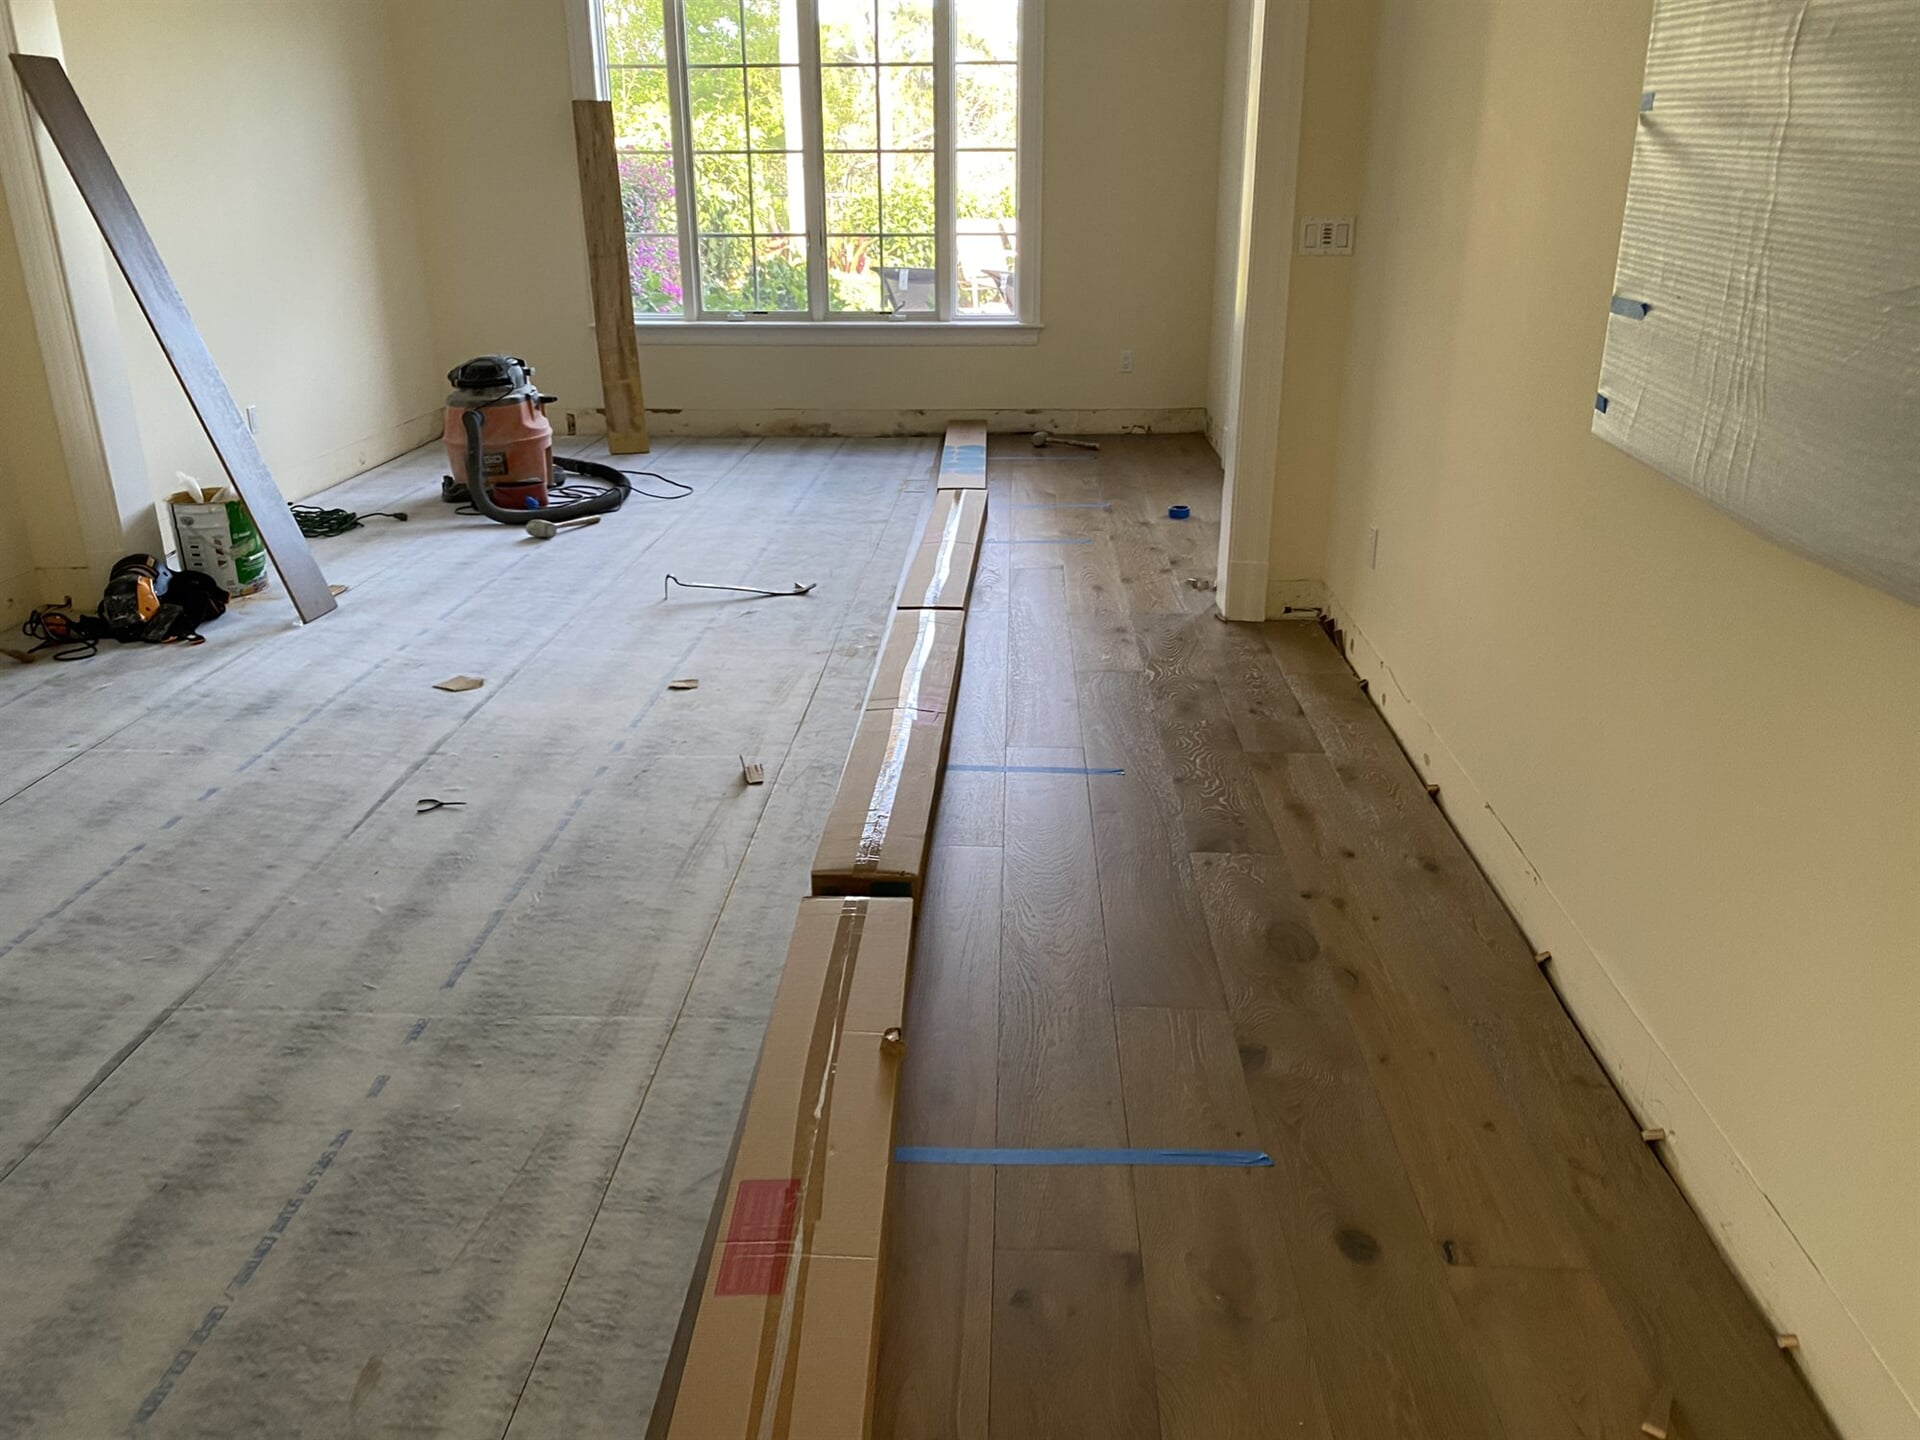 Flooring installation in progress in West Palm Beach, FL from Floors For You Kitchen & Bath